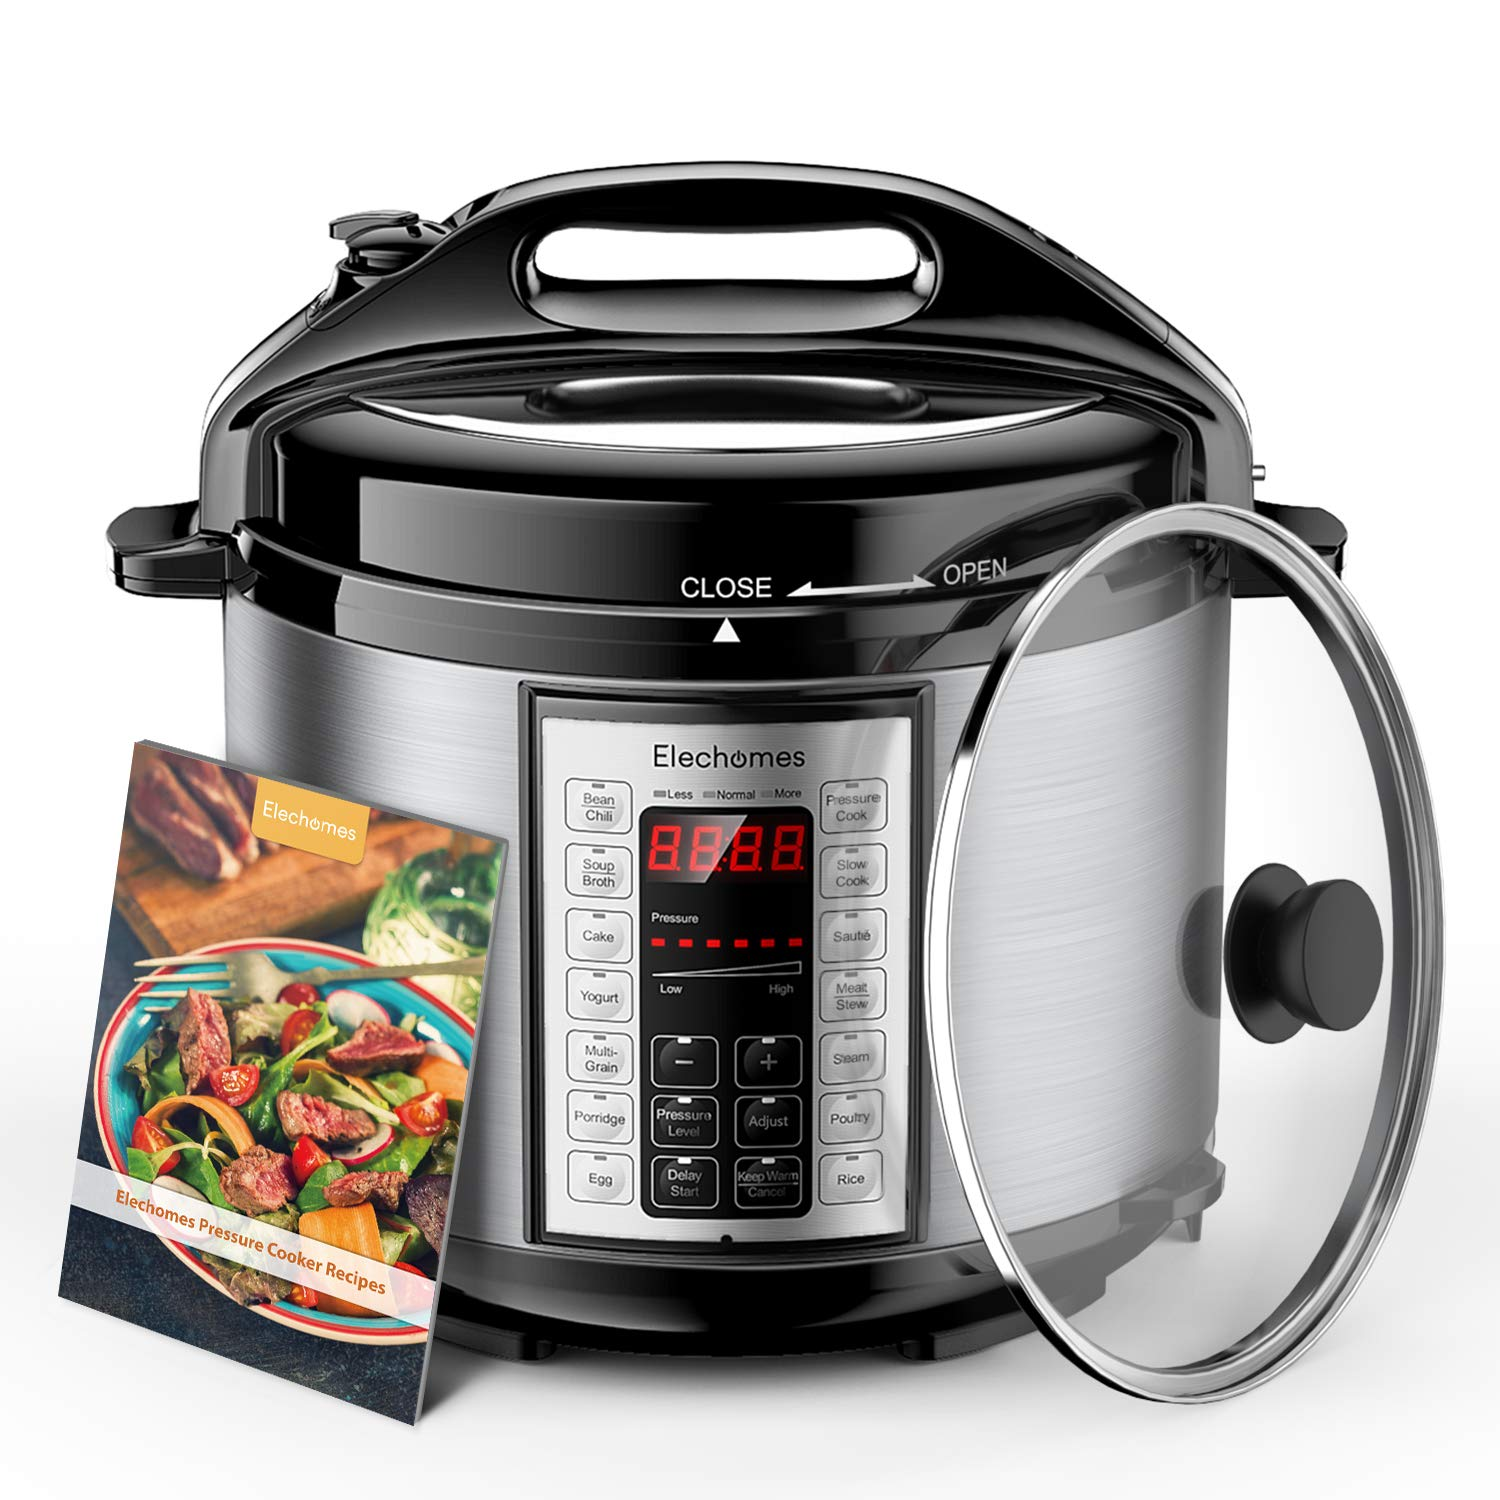 Elechomes Electric Pressure Cooker 6 Qt with Stainless Steel Inner Pot 9-in-1 Crock Pot Multi-use Programmable Slow Cooker, Rice Cooker, Yogurt Cake Maker, Sauté Steamer, Warmer, and Sterilizer